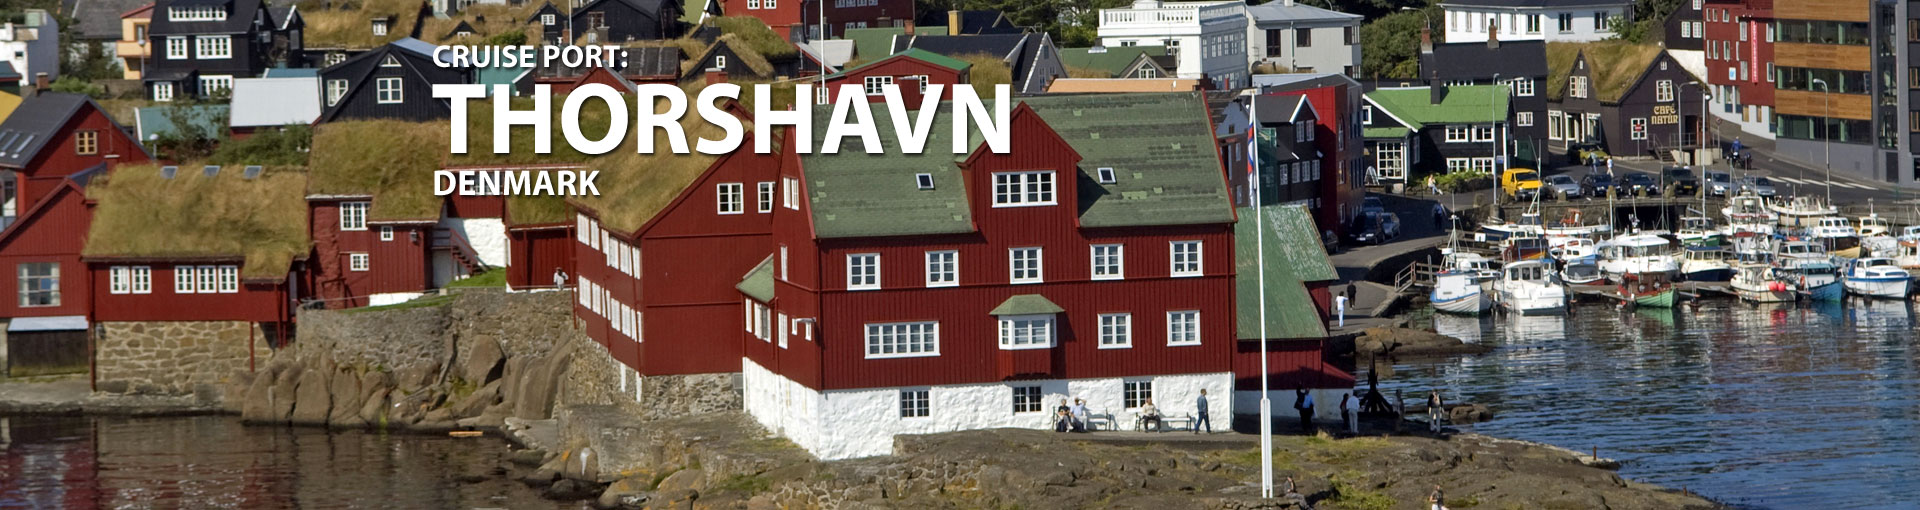 Cruises to Thorshavn, Denmark